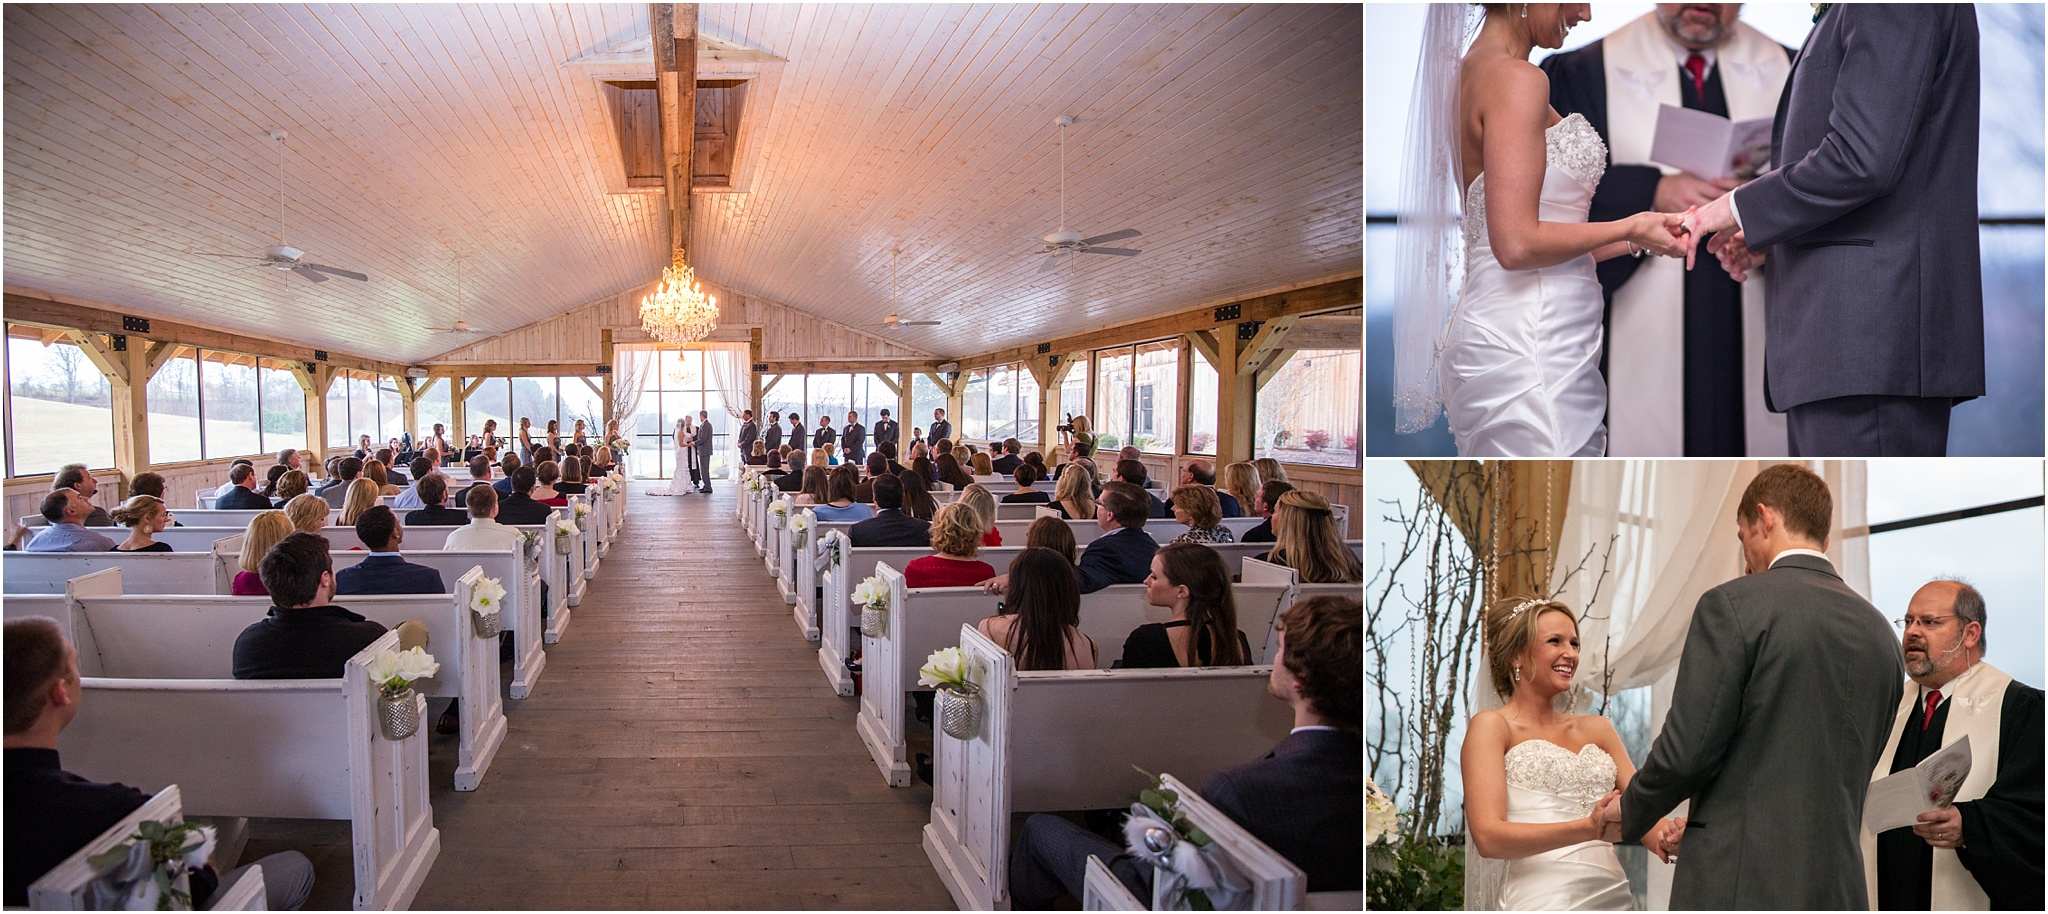 Greg Smit Photography Nashville wedding photographer Mint Springs farm 19